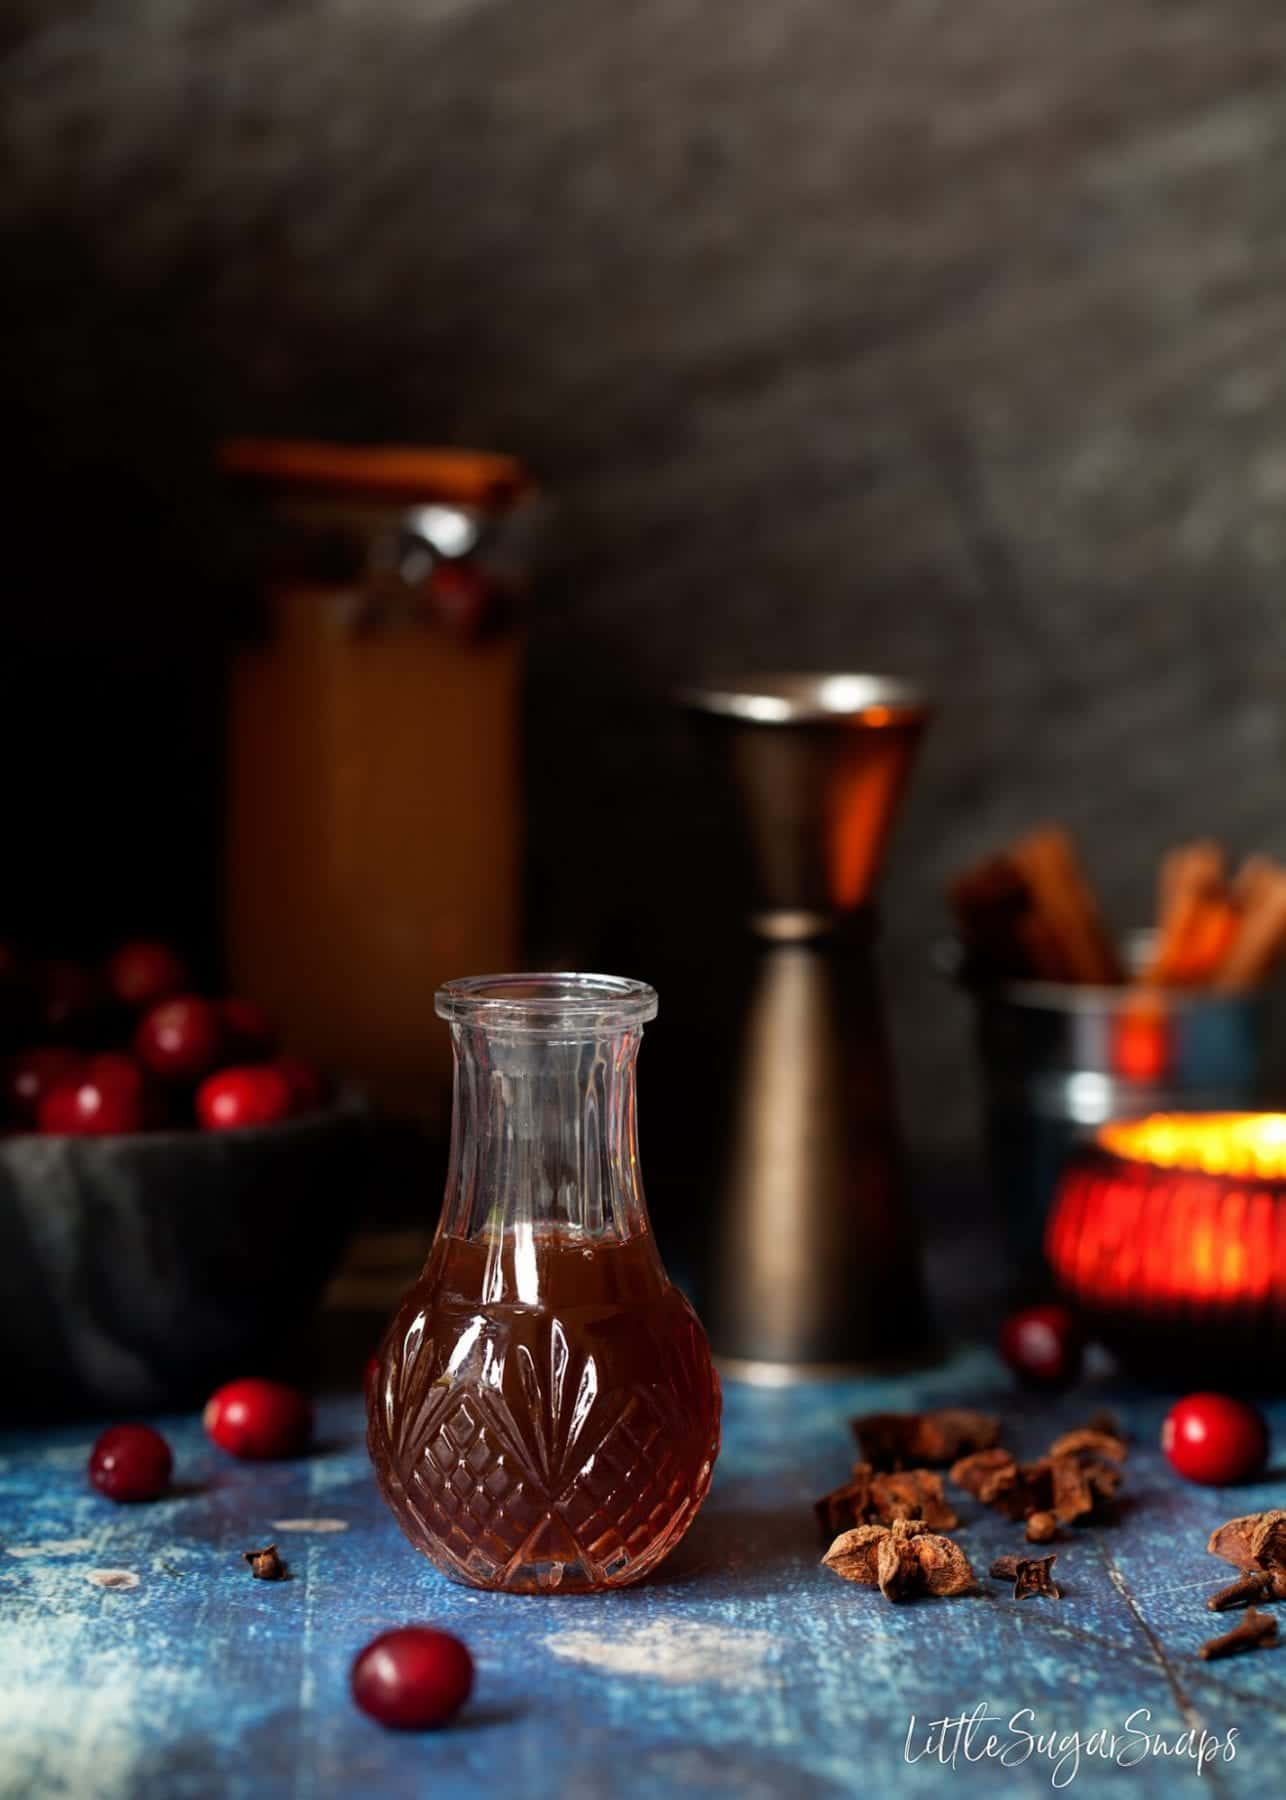 A small bottle of tonic syrup with cranberries, star anise and a tea light